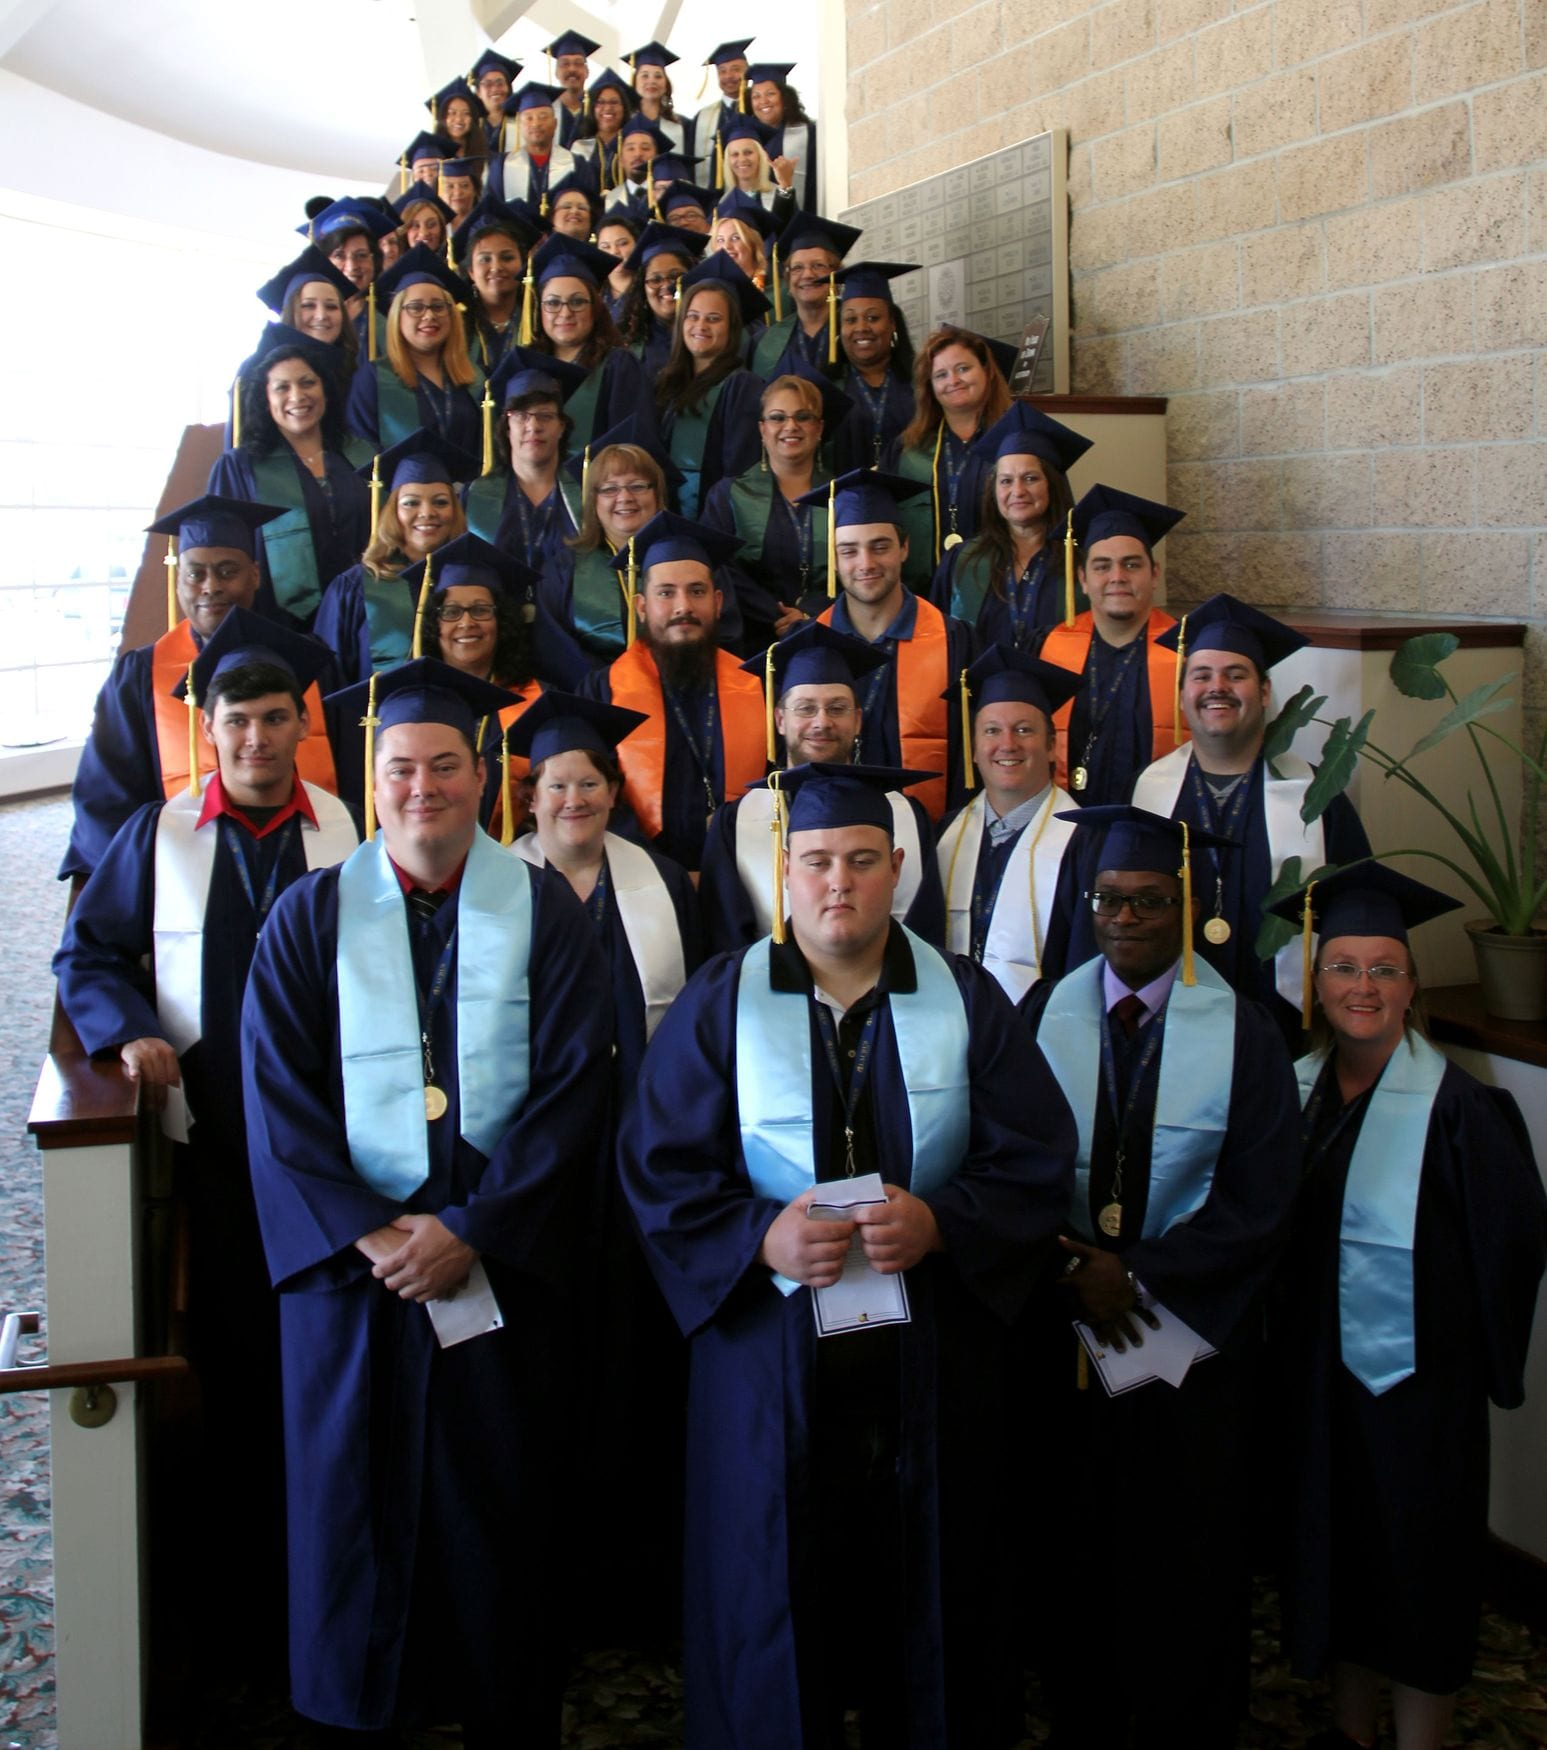 Laurus College Commencement - Class of 2015-2016